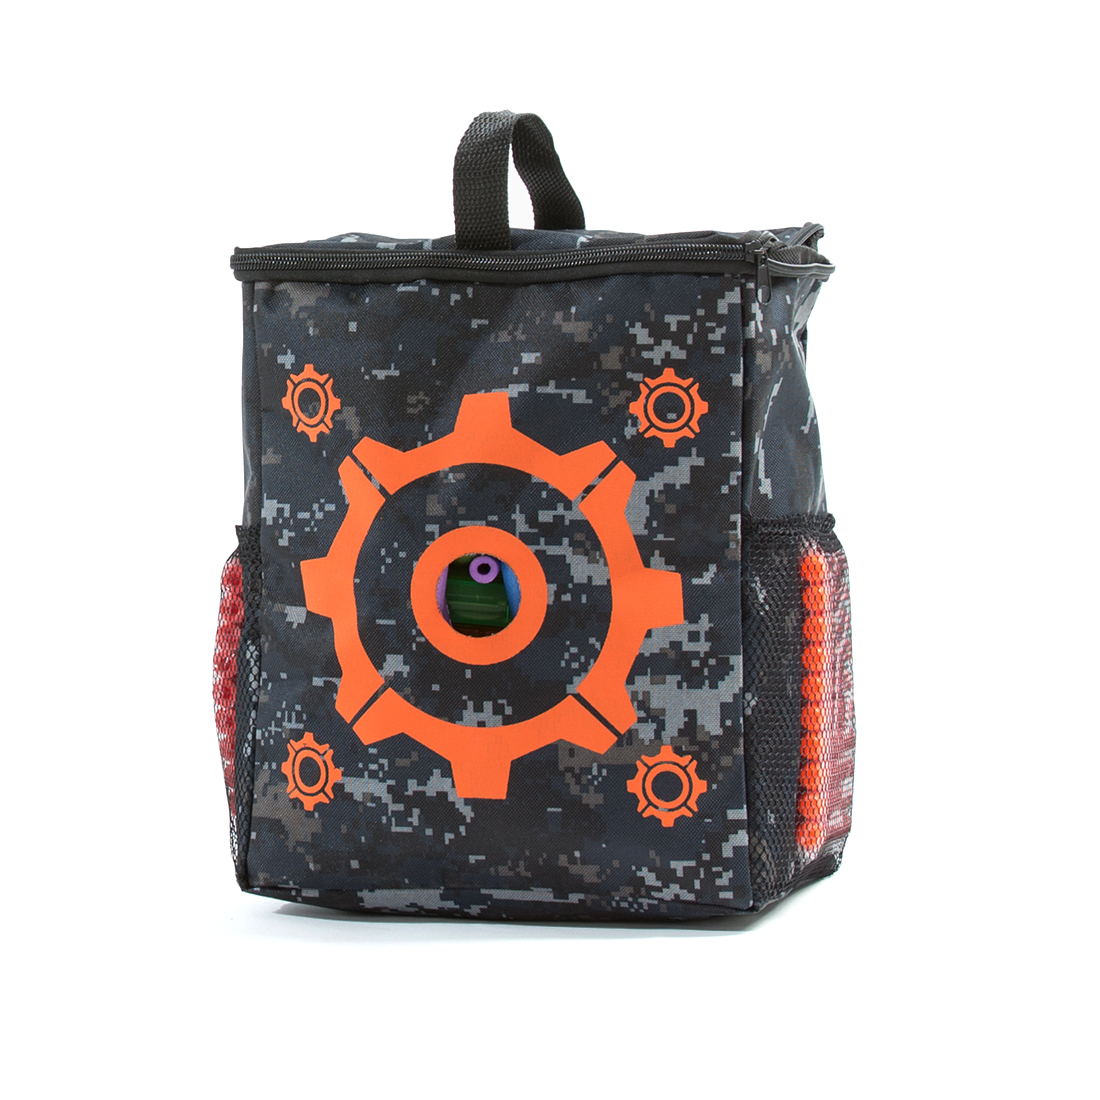 Oxford Cloth Target Pattern Shooting Practice Bag Soft Bullet Bag for Nerf Camouflage